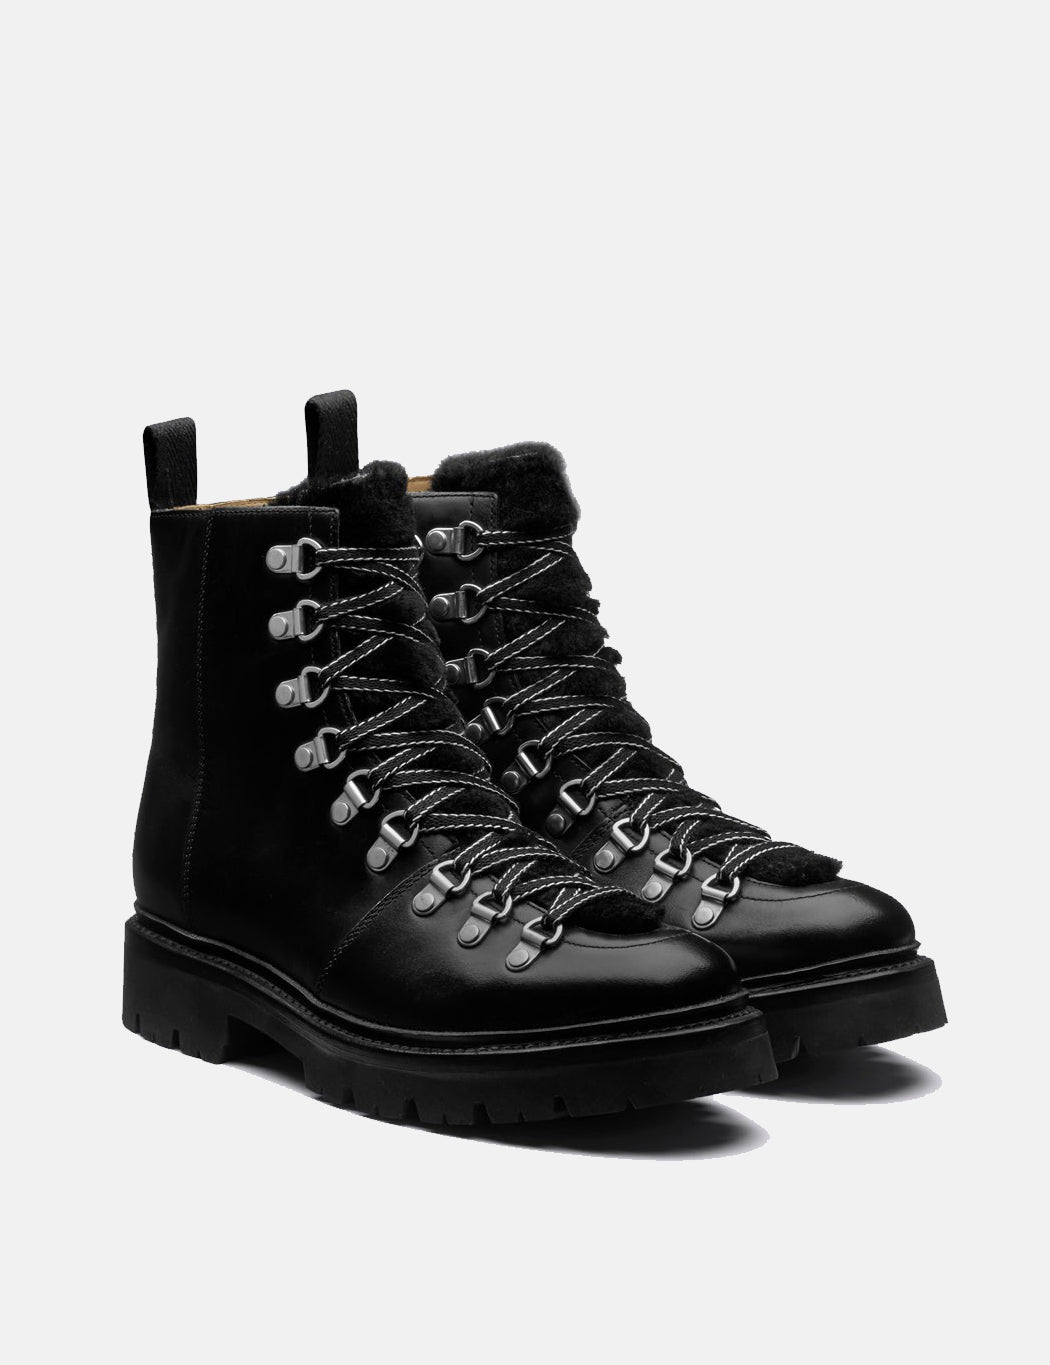 Womens Grenson Nanette Boot Leather/Shearling - Black   URBAN EXCESS.